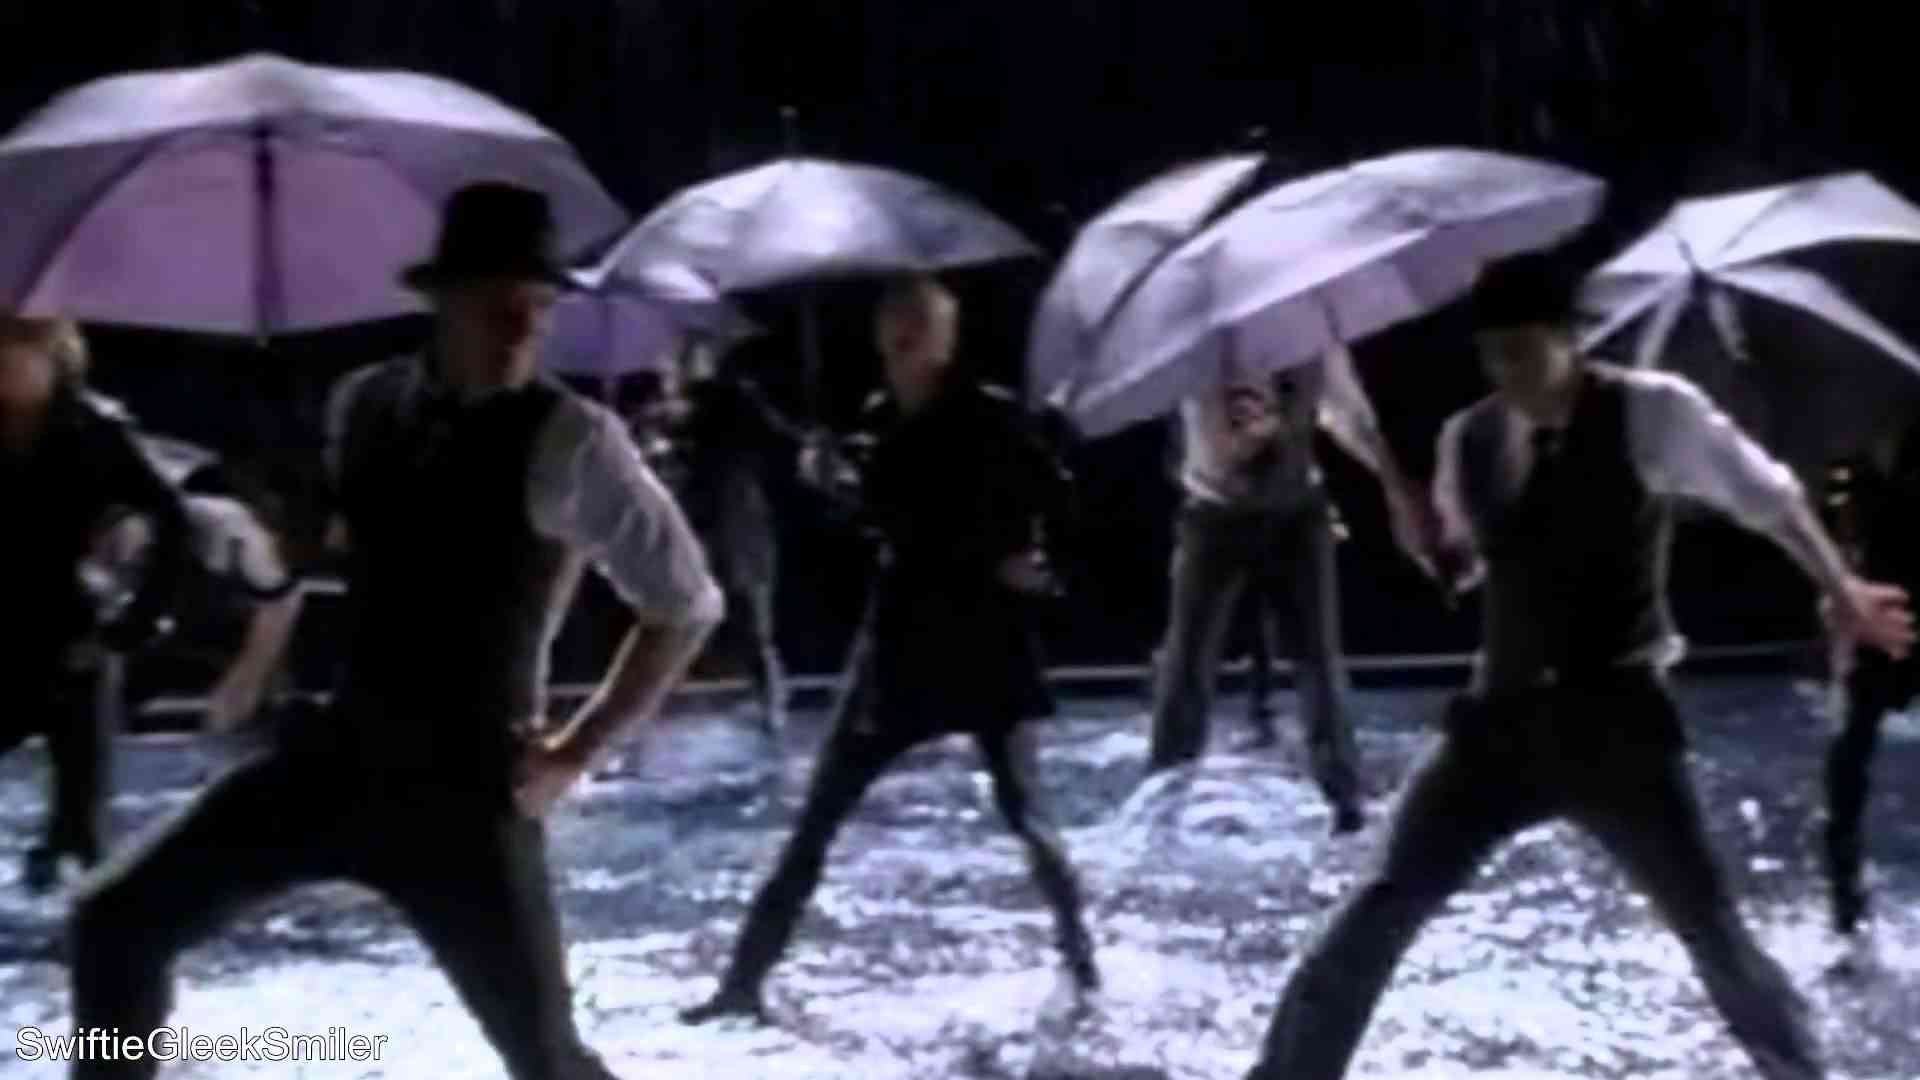 GLEE - Singing In The Rain/Umbrella (Full Performance) (Official Music Video) - YouTube